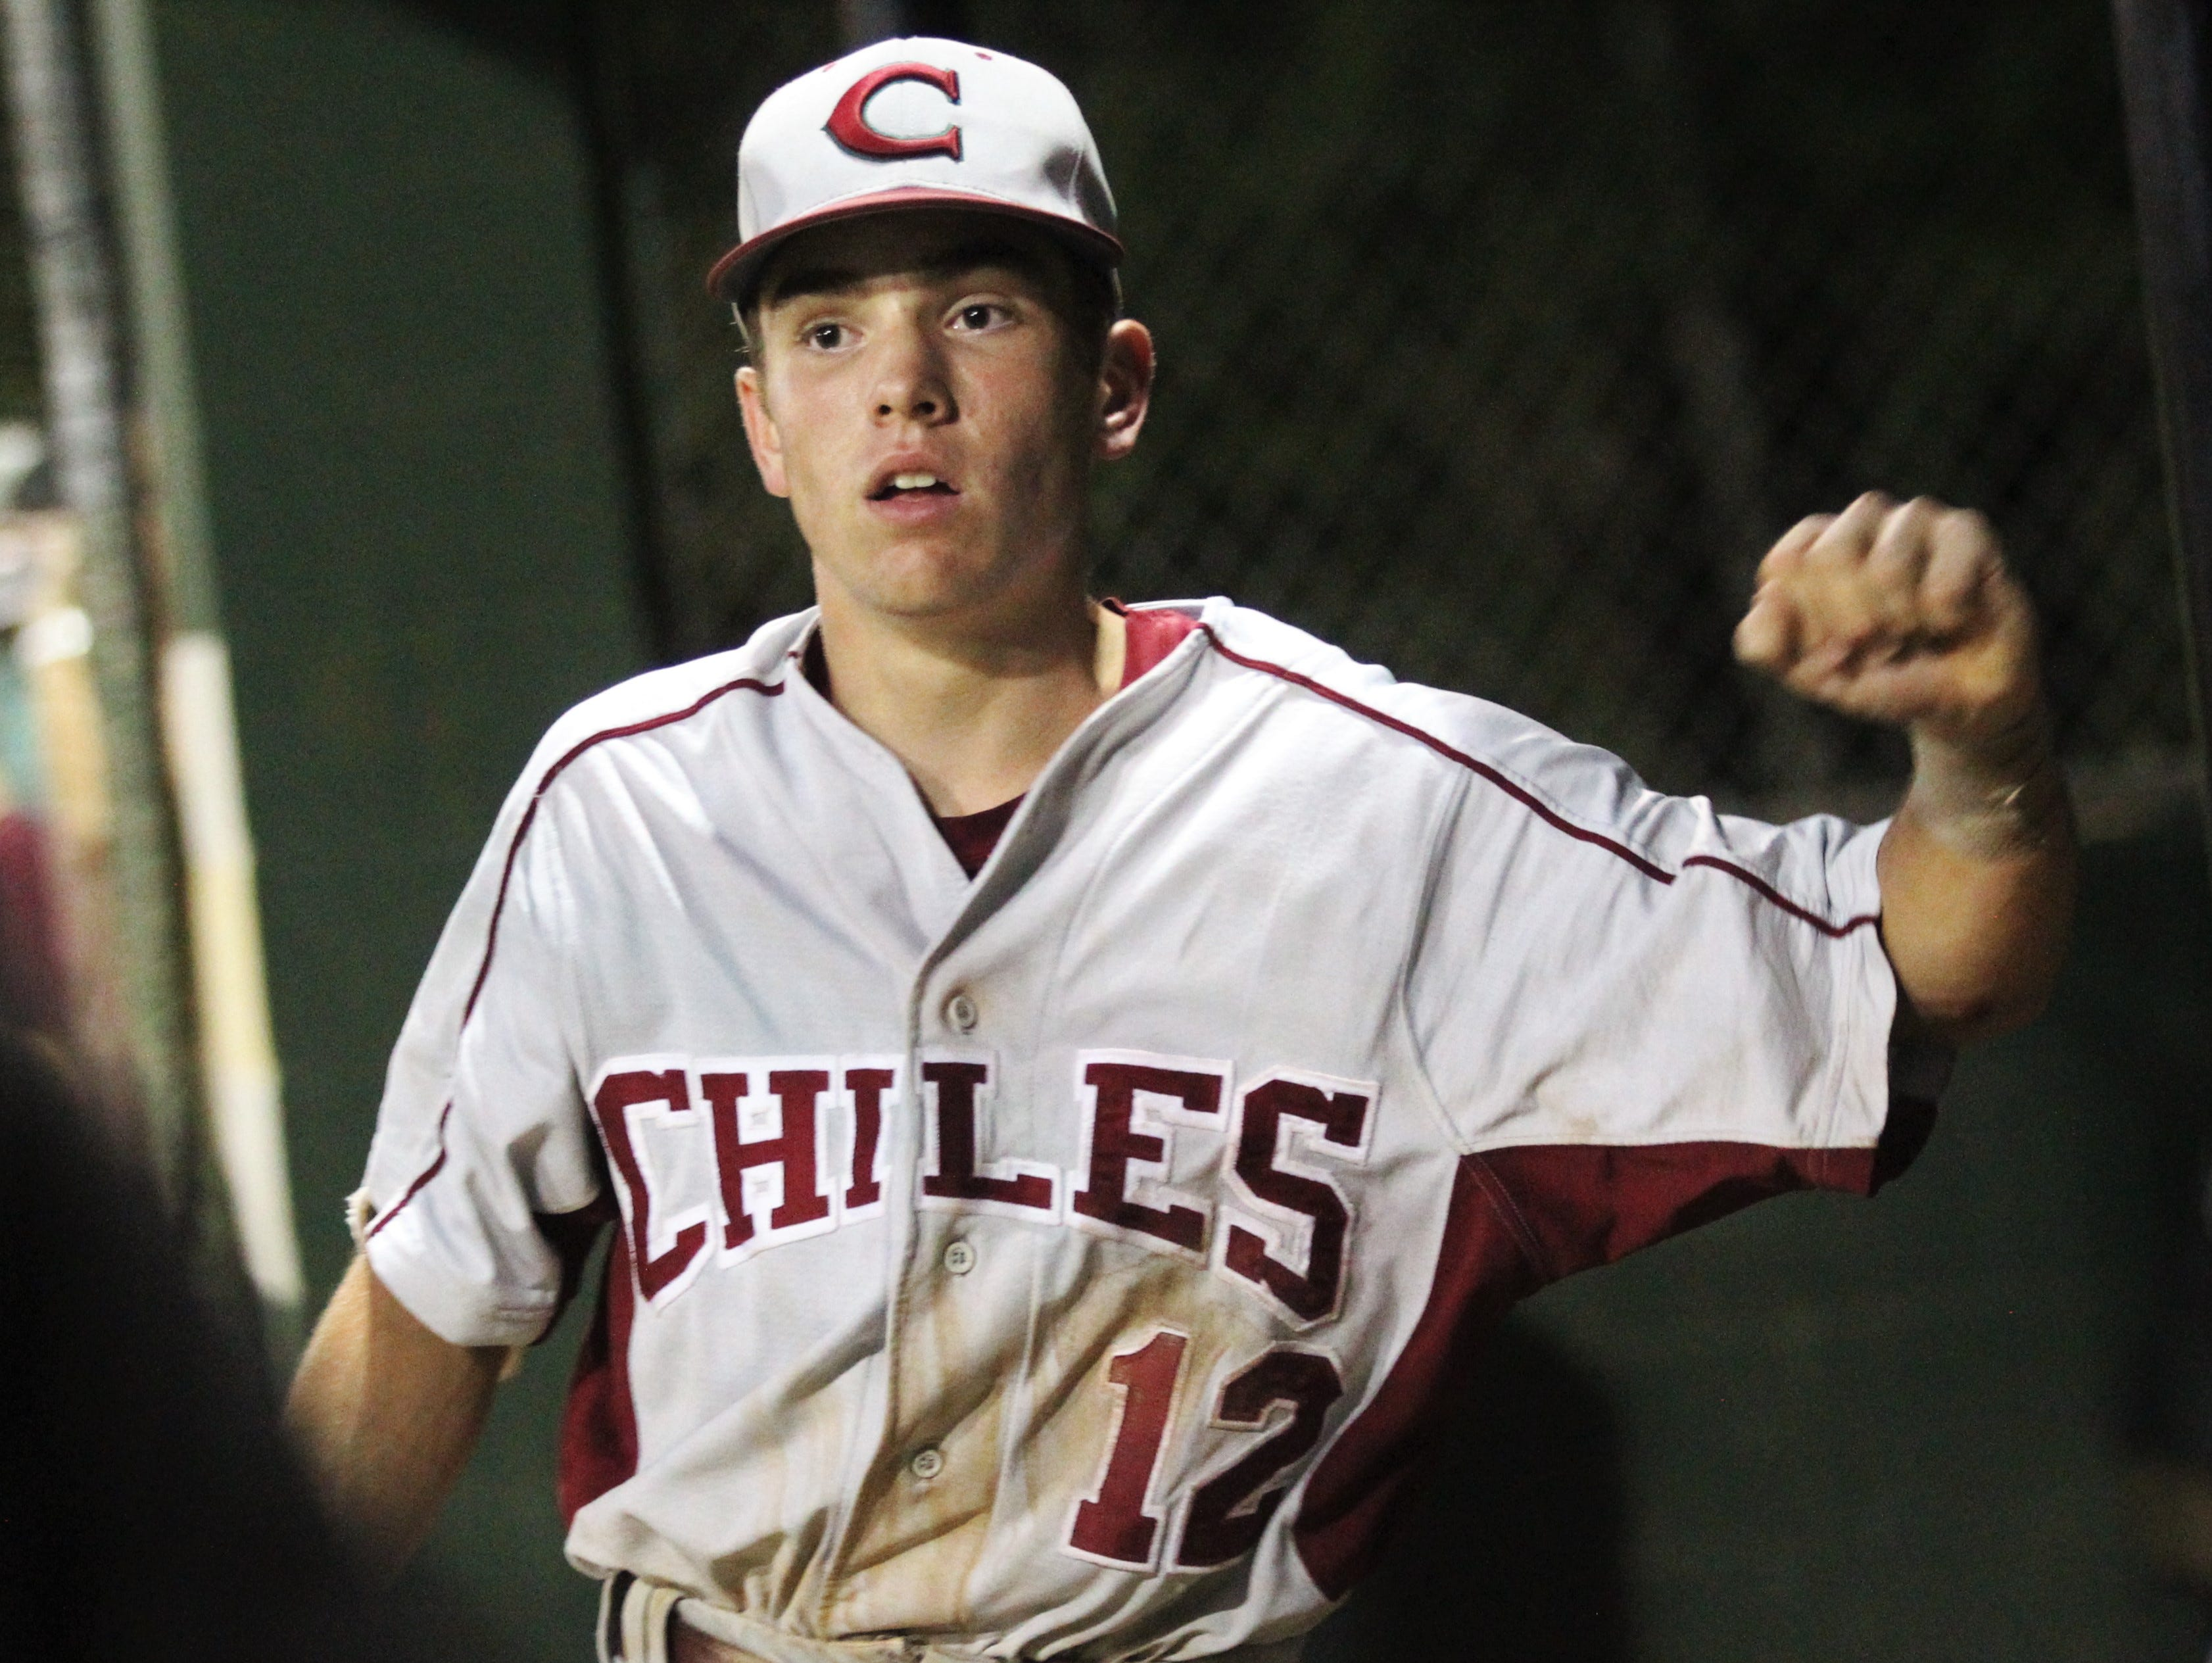 Chiles freshman Jaxson West reacts in the dugout after hitting a sac fly as Lincoln baseball beat Chiles 5-4  in 10 innings during a District 2-8A championship game on Thursday, May 9, 2019.